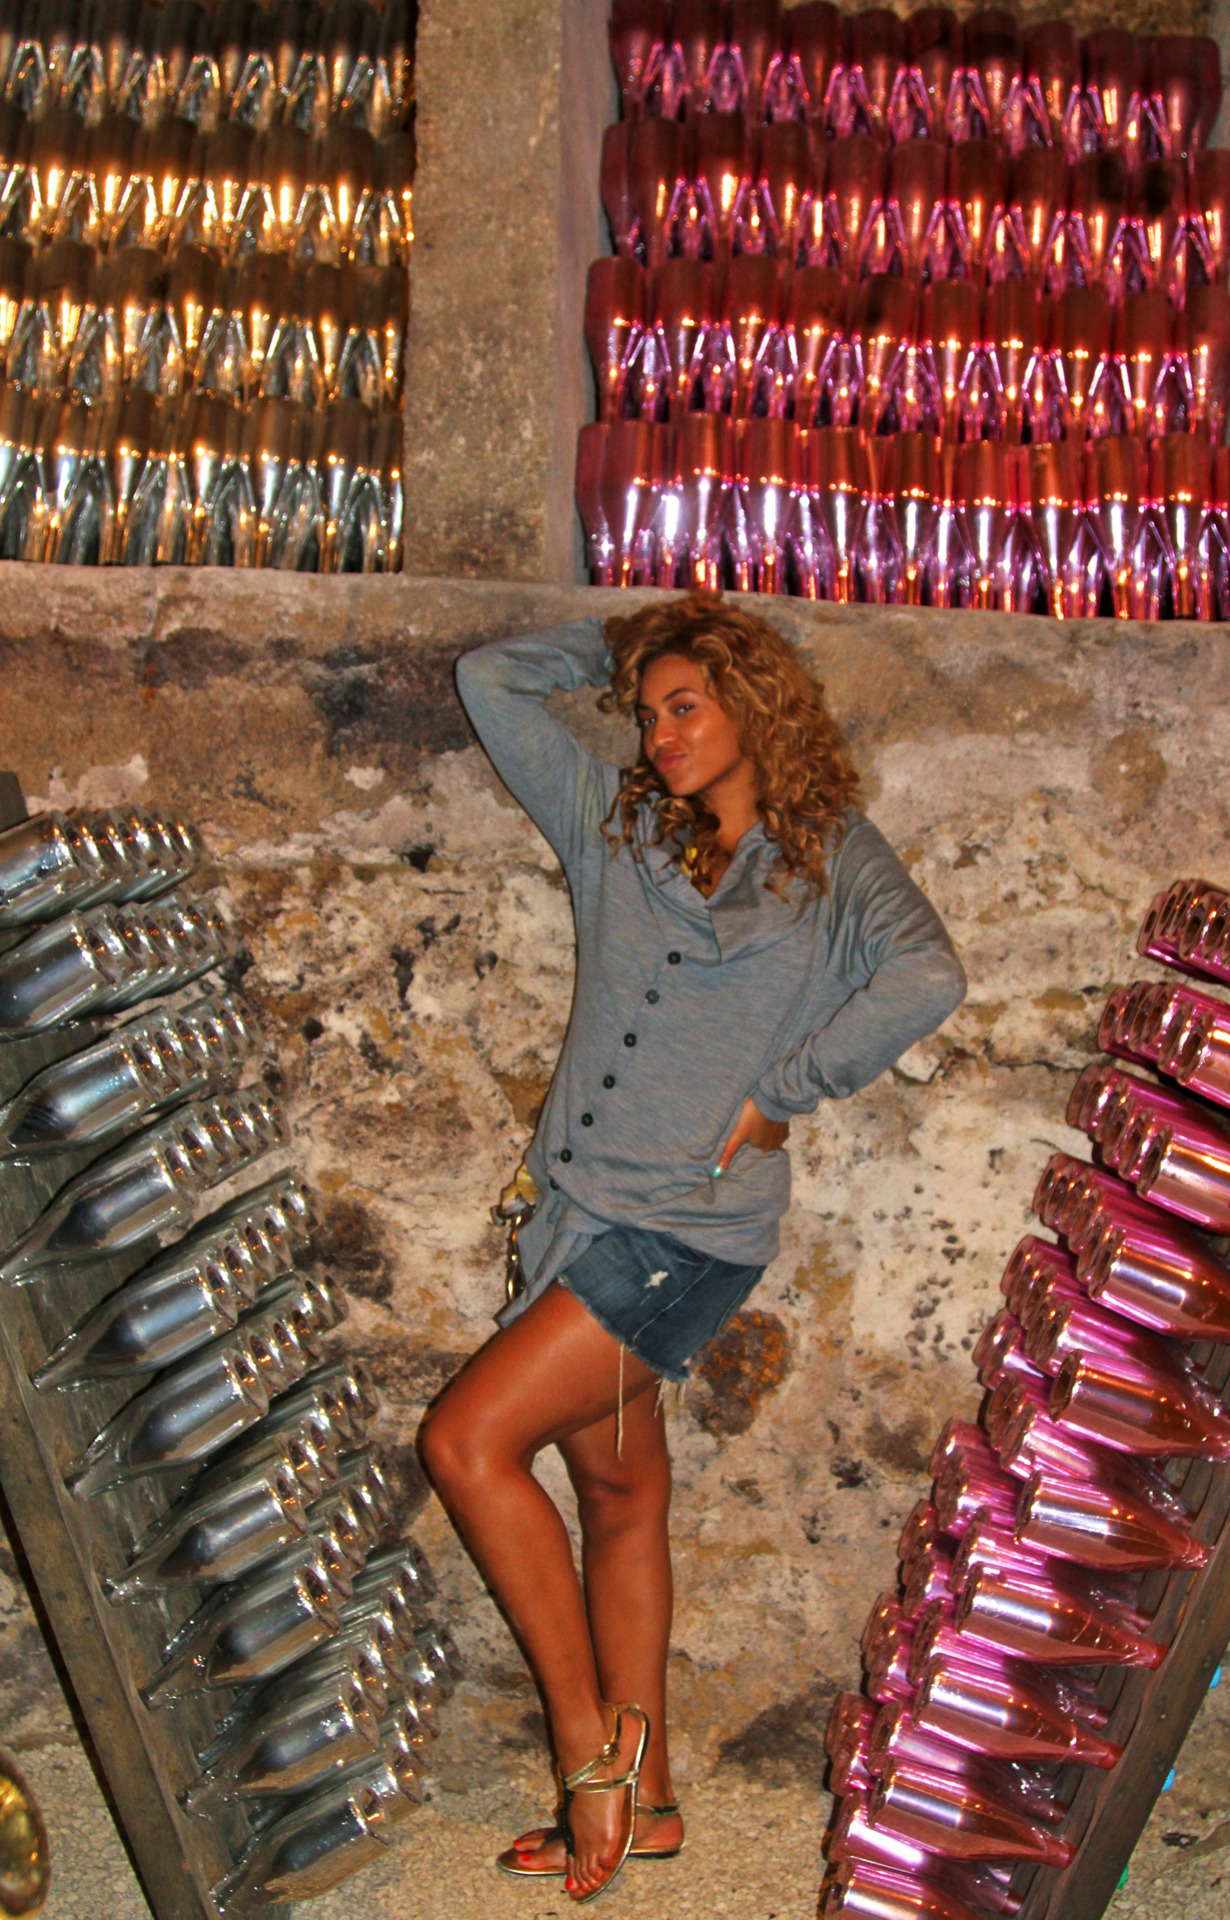 Apr 5 2012 in beyonce debuts tumblr page with countless photos